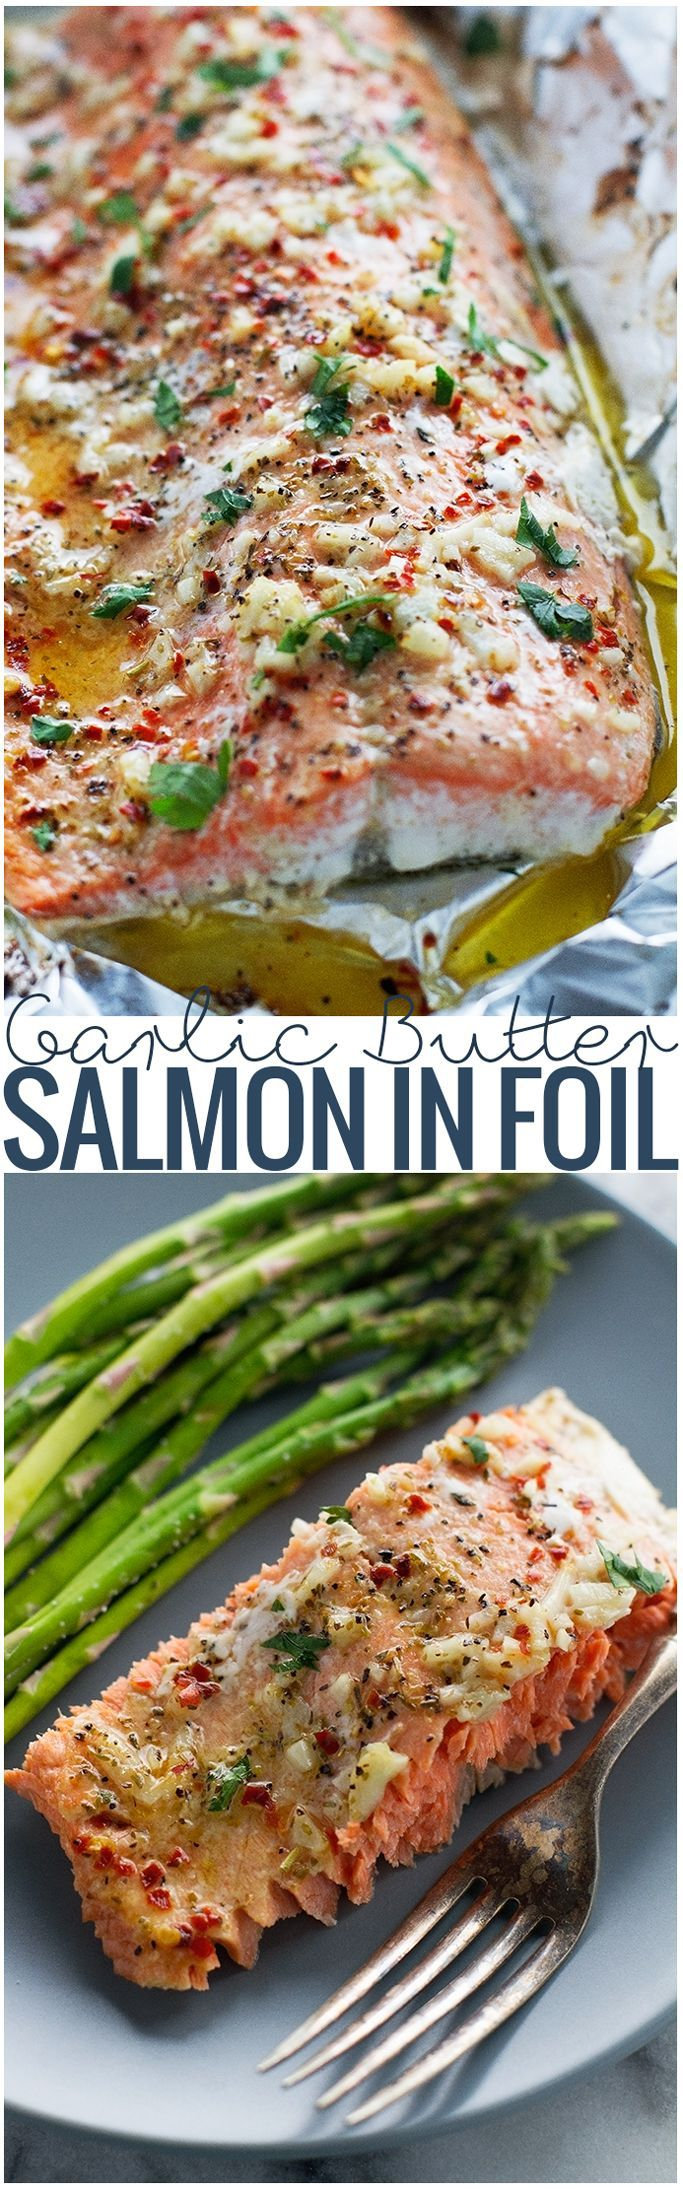 Lemon Garlic Butter Baked Salmon in Foil - This recipe takes less than 30 minutes